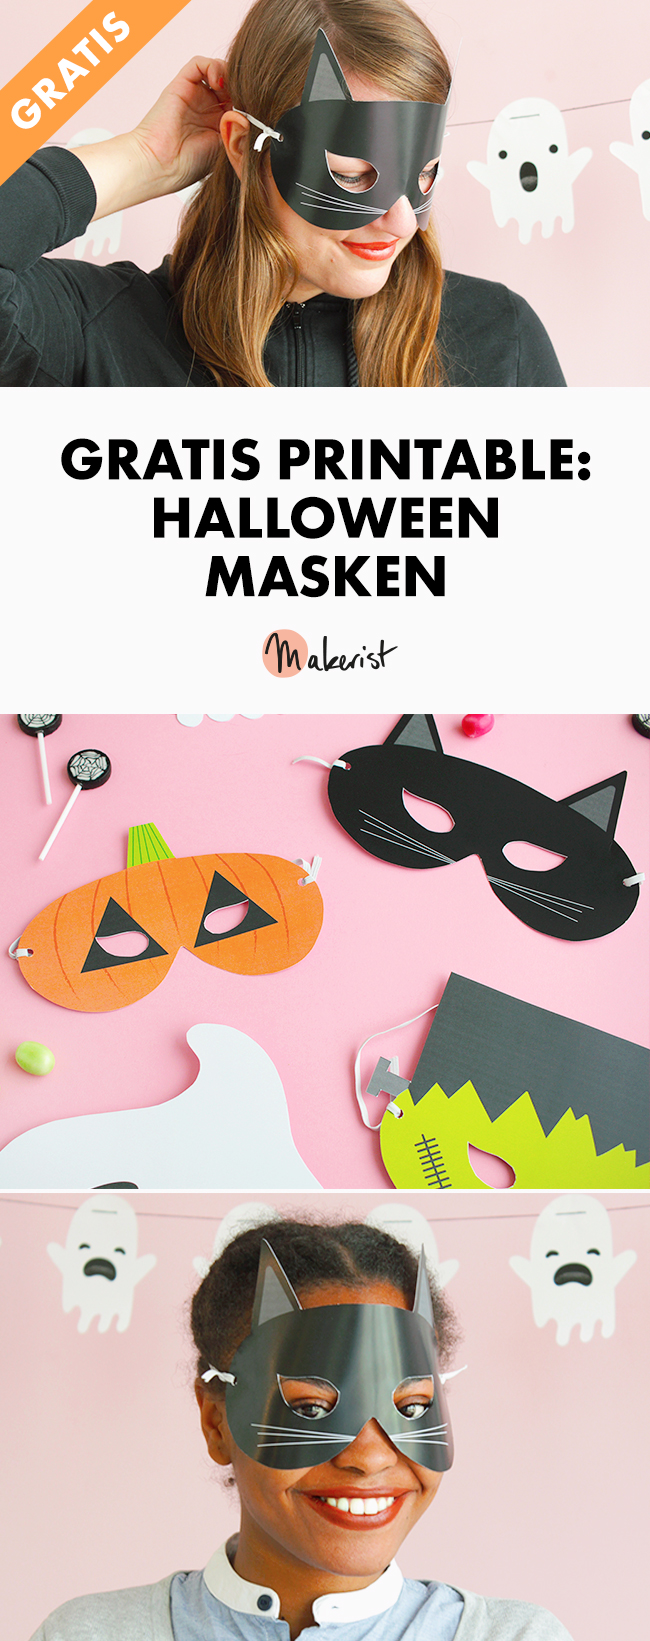 Makerist gratis printable halloween masken pin